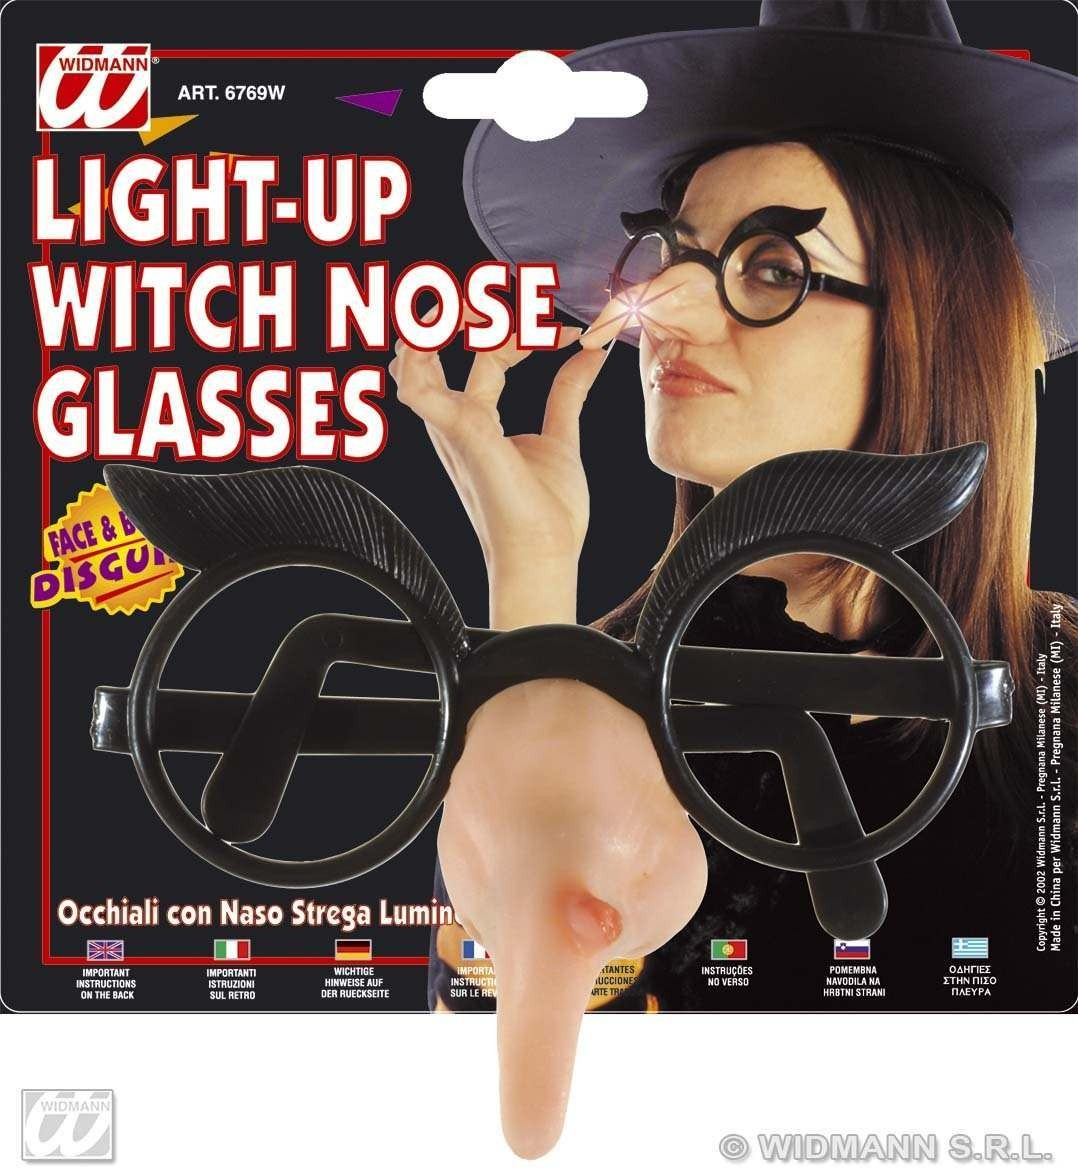 Glasses W/Light Up Witch Nose - Fancy Dress (Halloween)